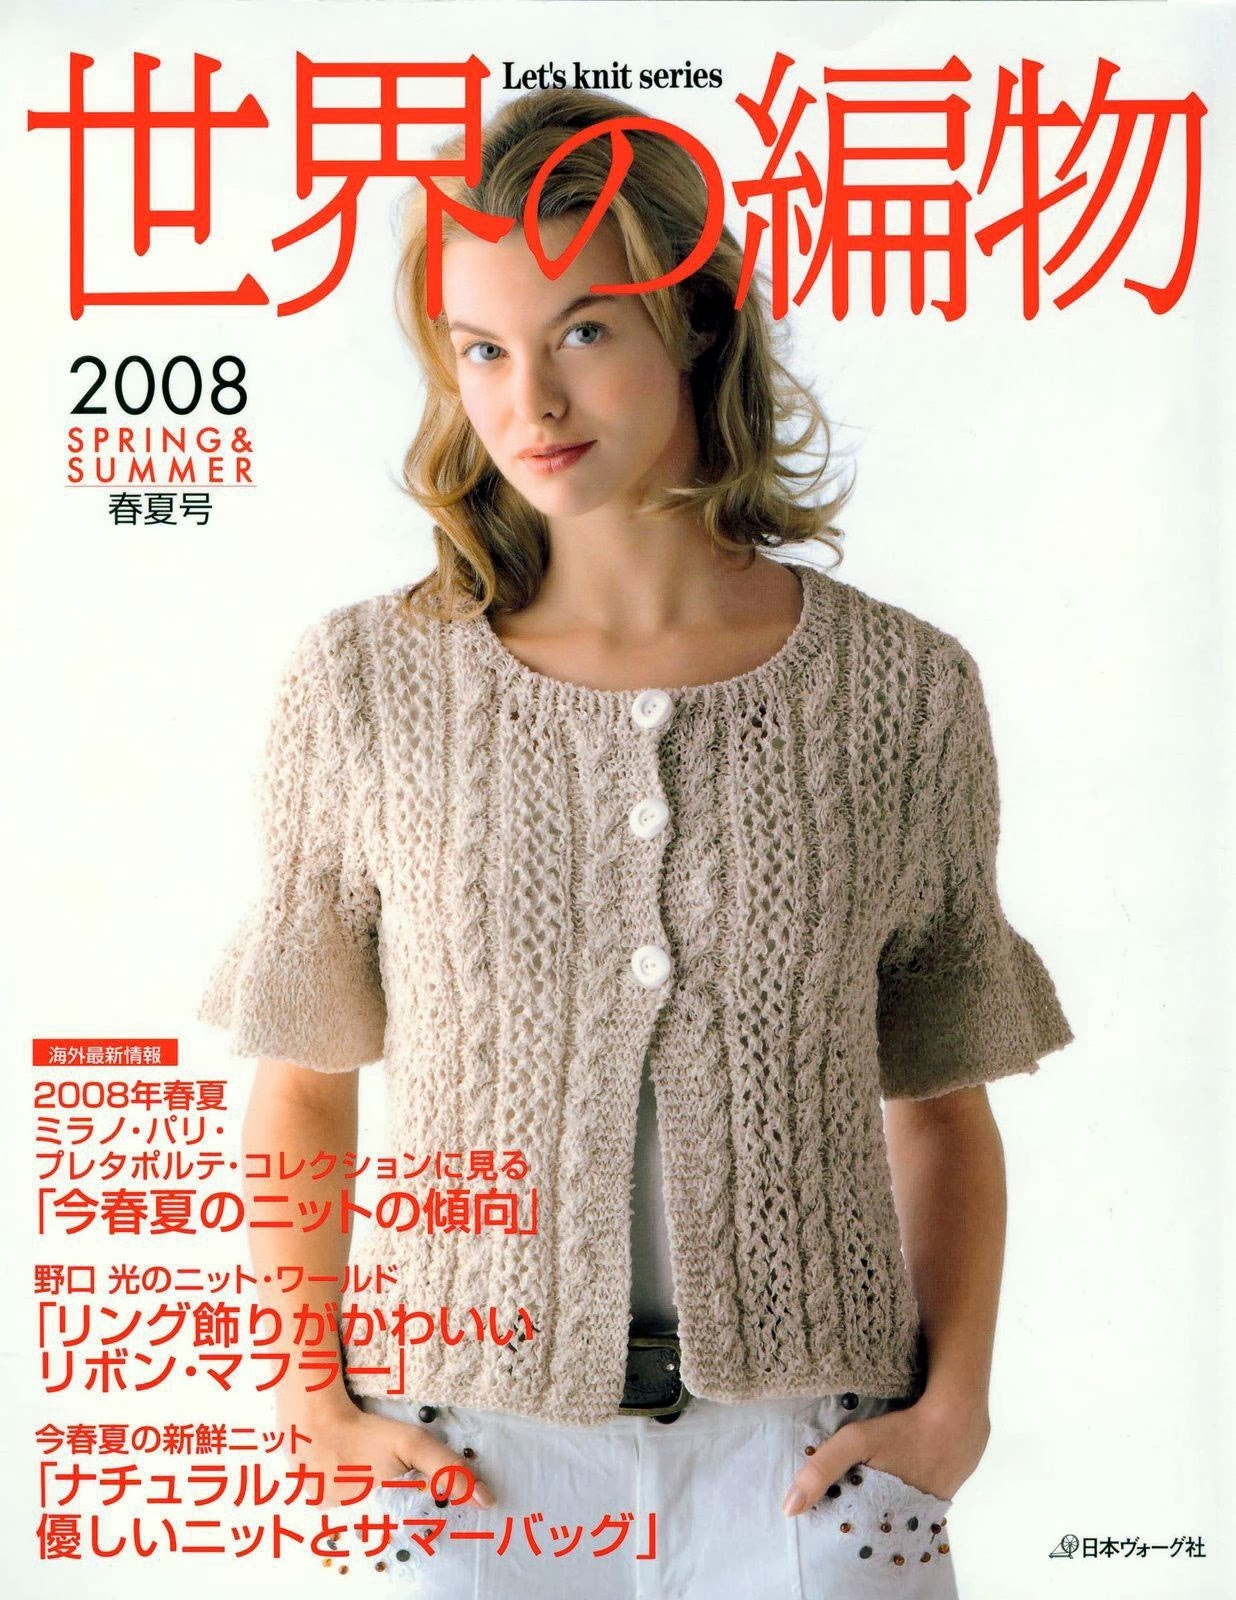 Knitting In The City Series Epub : Ebook let s knit series nv handmade bằng len